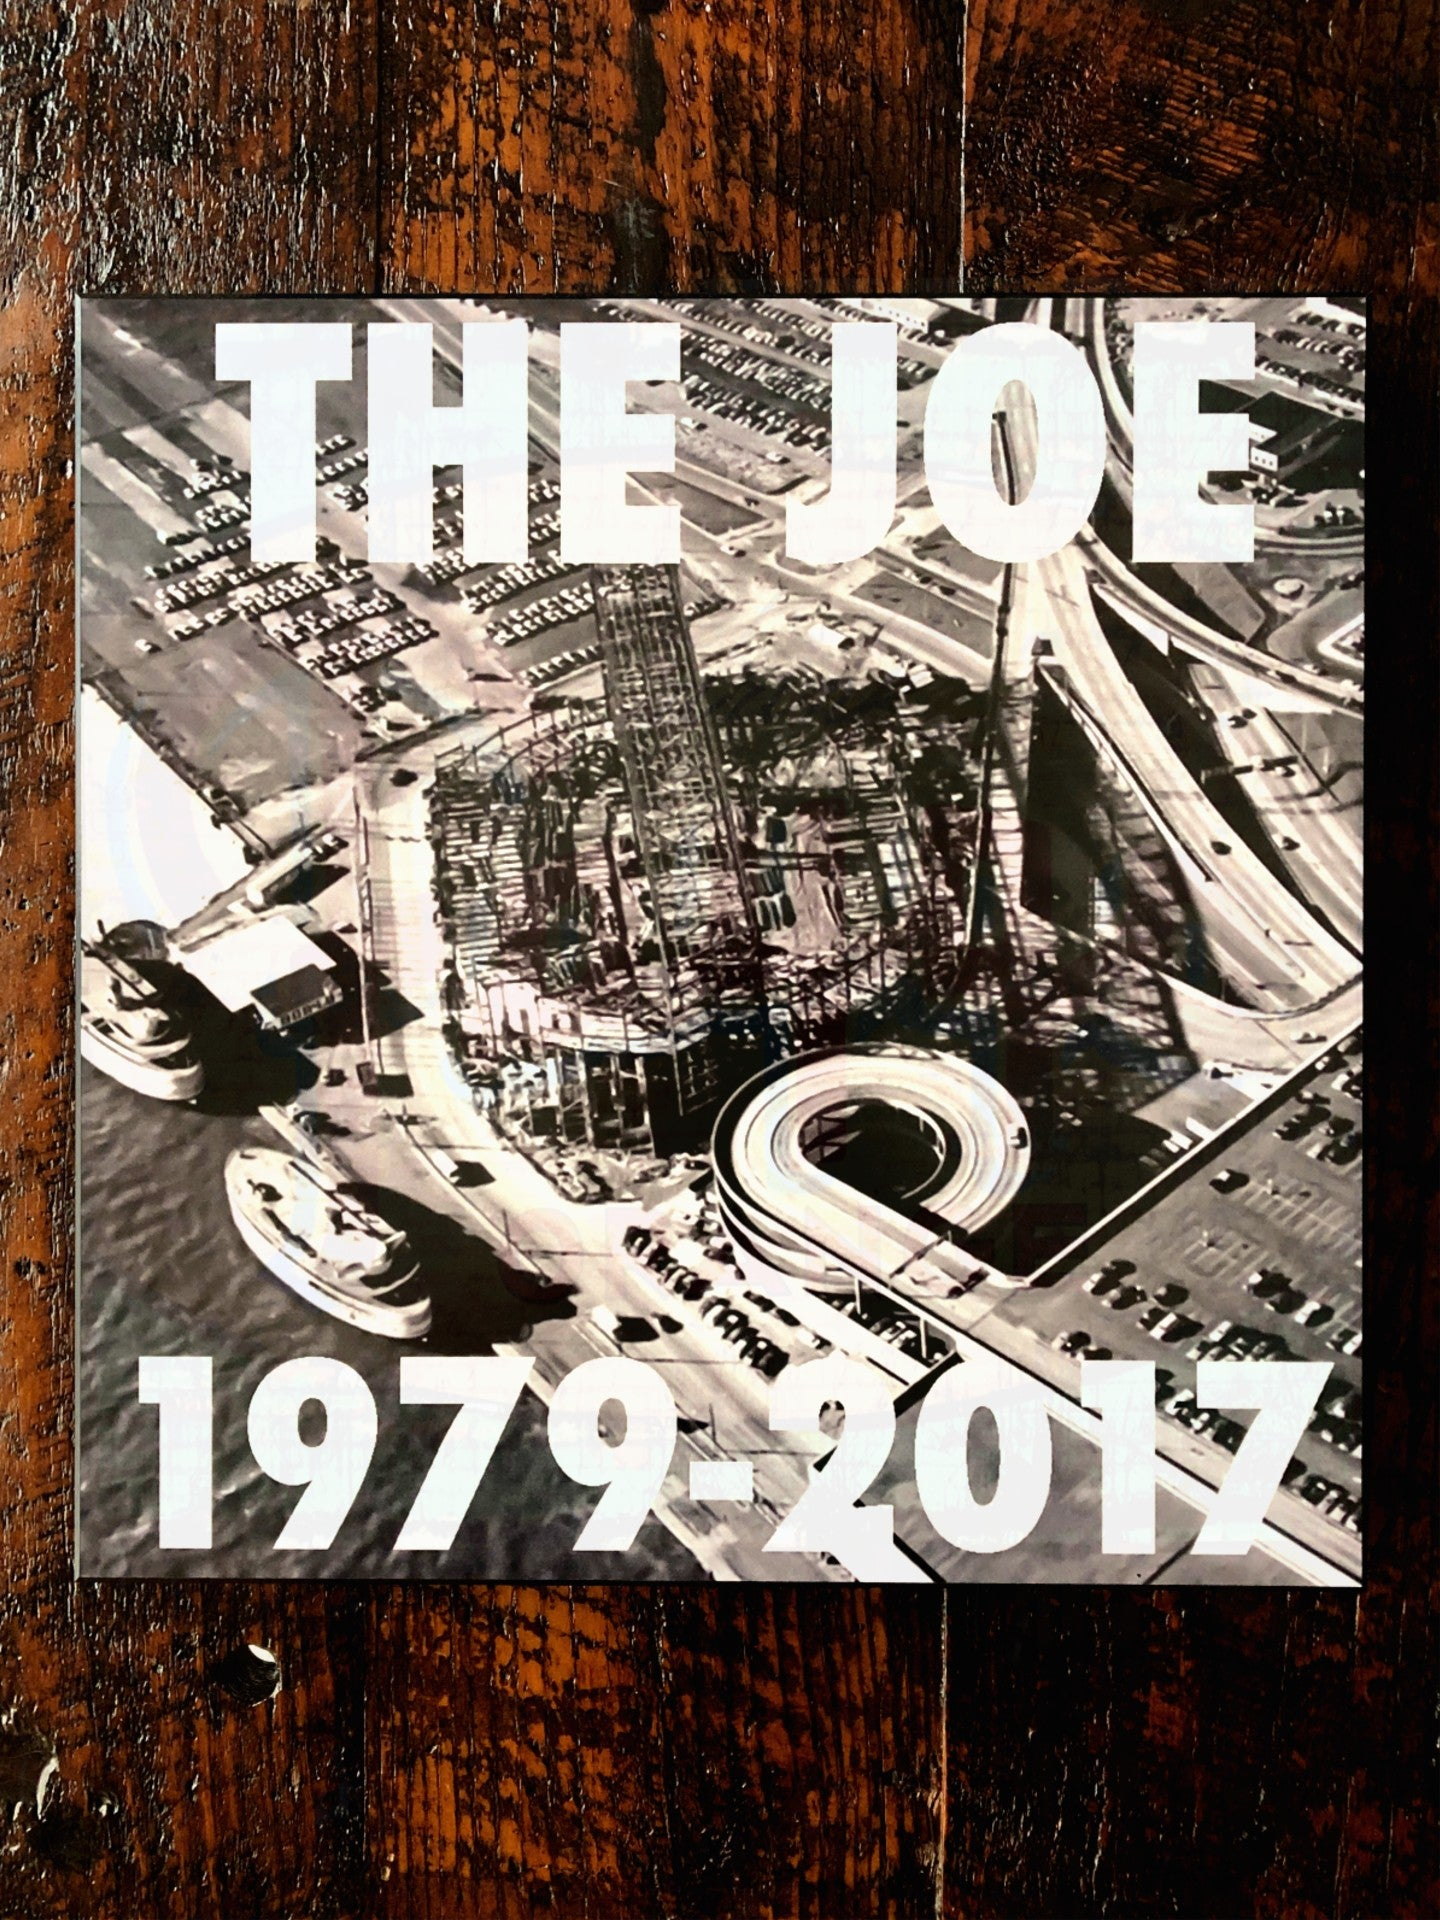 The Joe 1979-2017 Black and White Woodblock Print - Pure Detroit